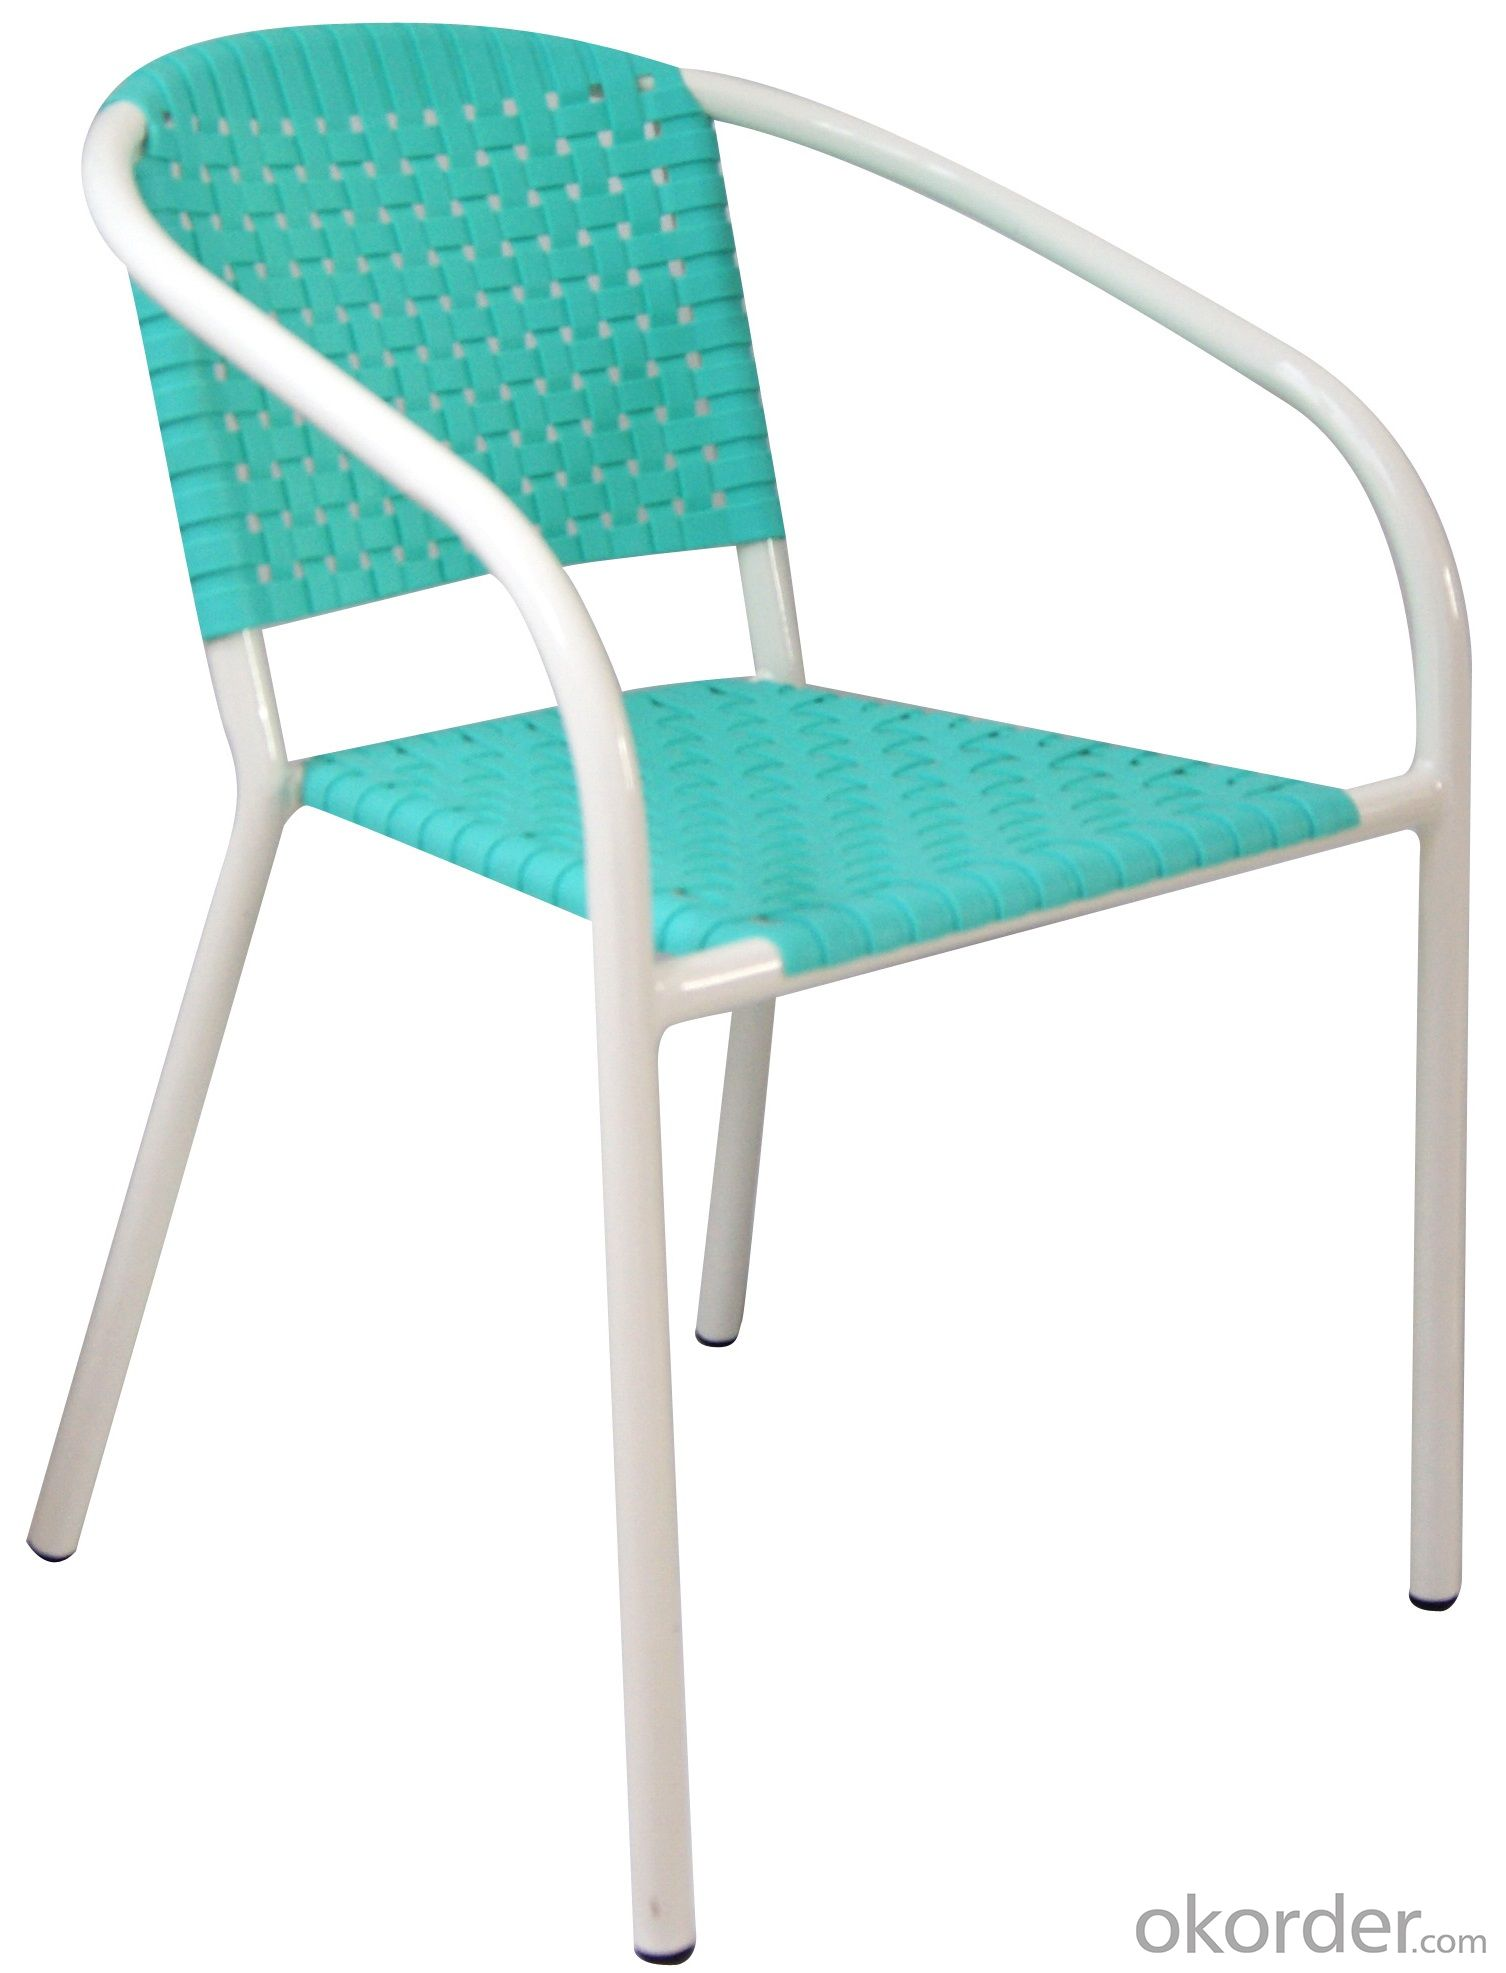 Outdoor plastic leisure chair